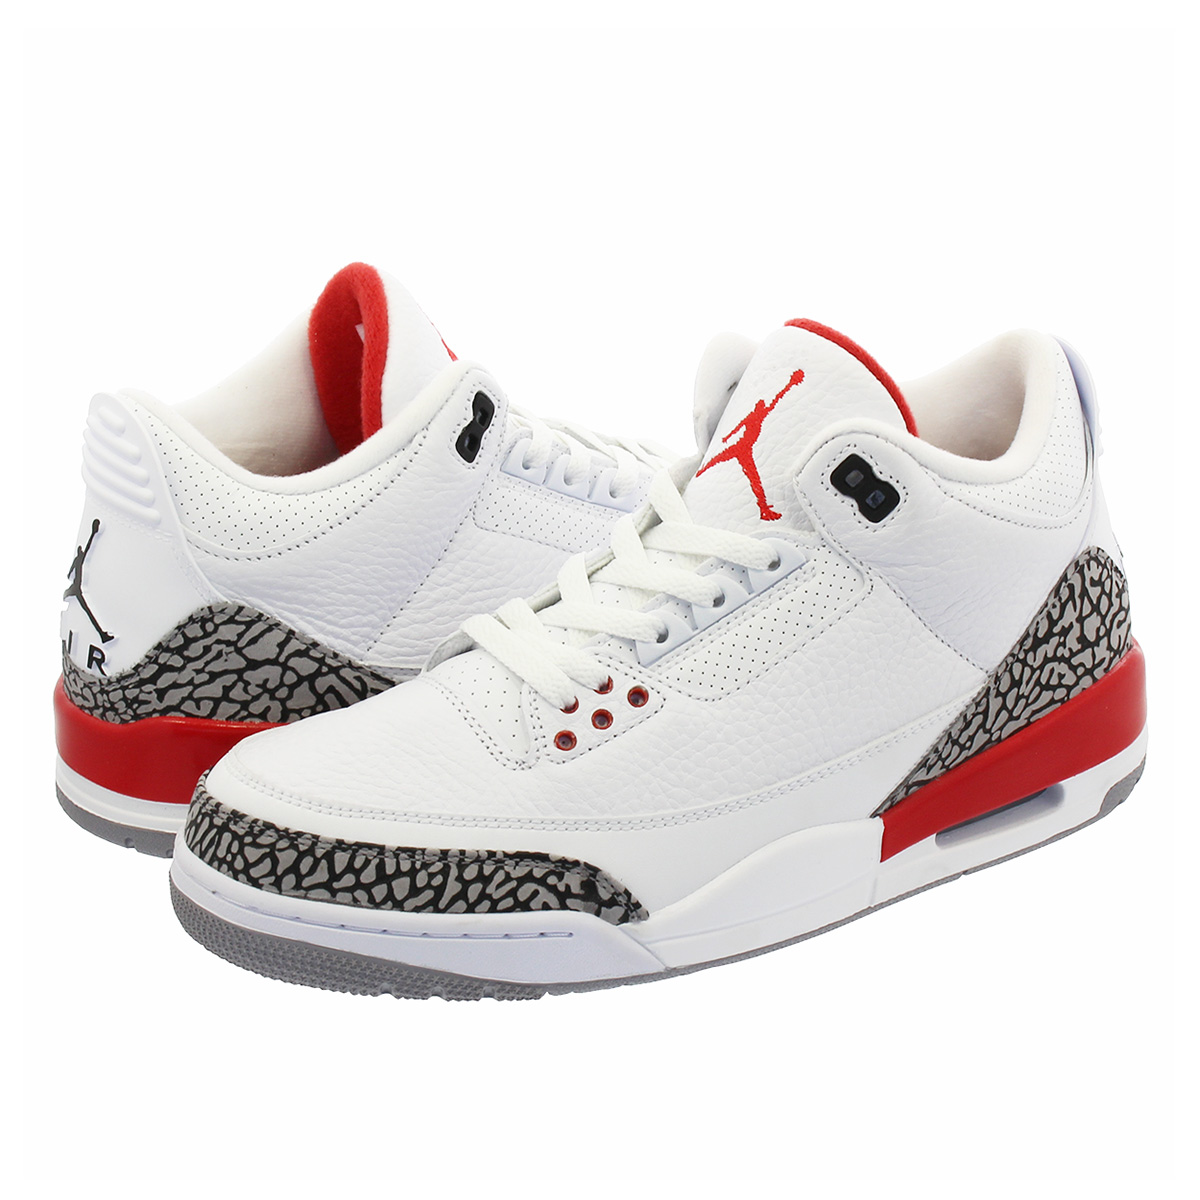 pretty nice 4de68 4324e NIKE AIR JORDAN 3 RETRO Nike Air Jordan 3 nostalgic WHITE/CEMENT GREY/FIRE  RED 136,064-116